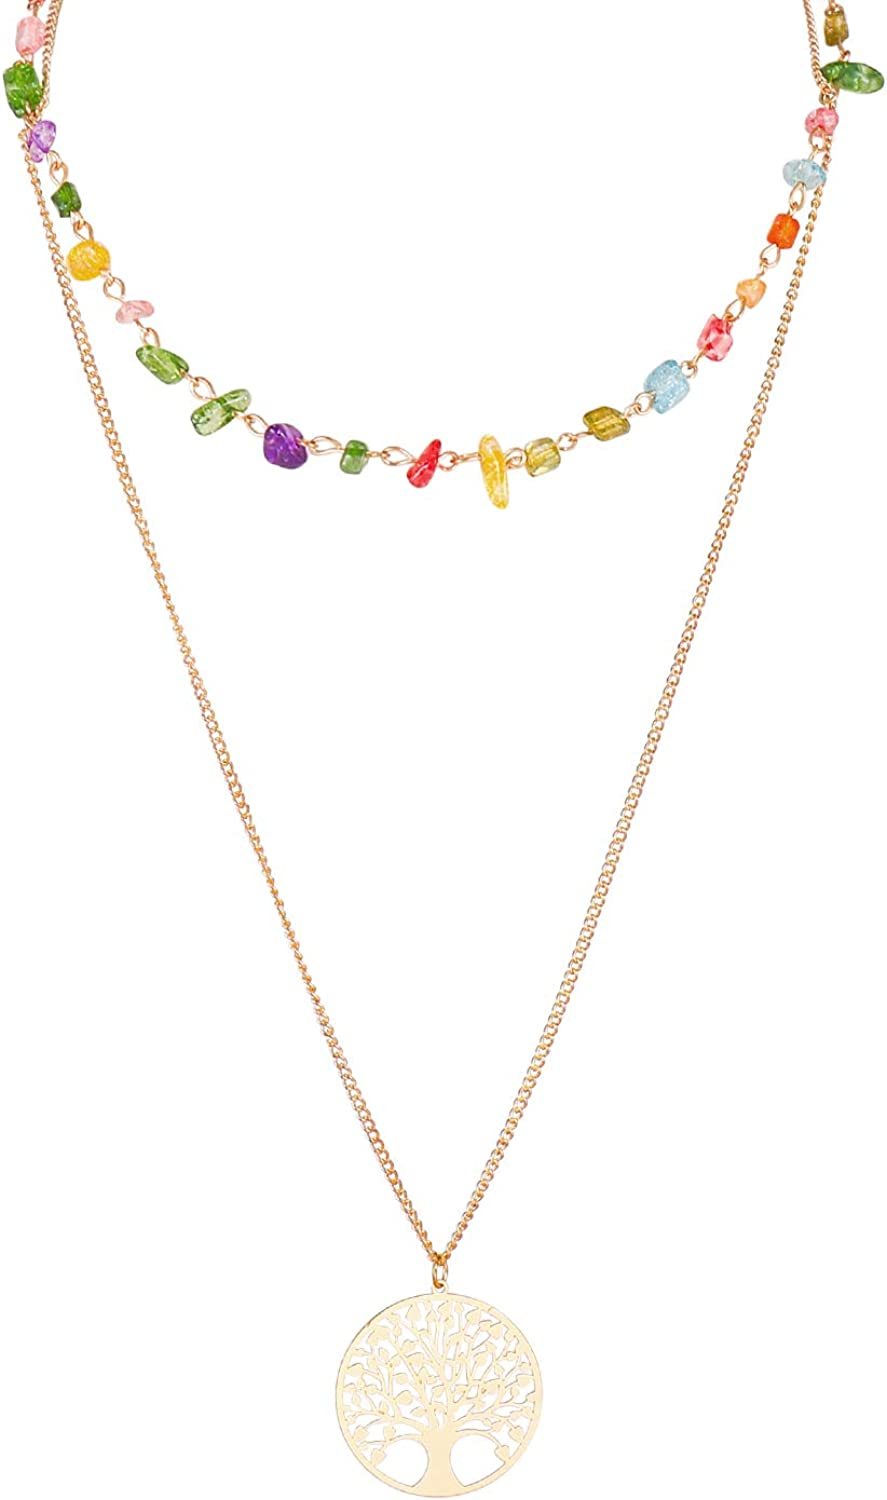 Layered Overseas parallel import regular item Necklaces Recommendation for Women Double with Necklace Creative Layer